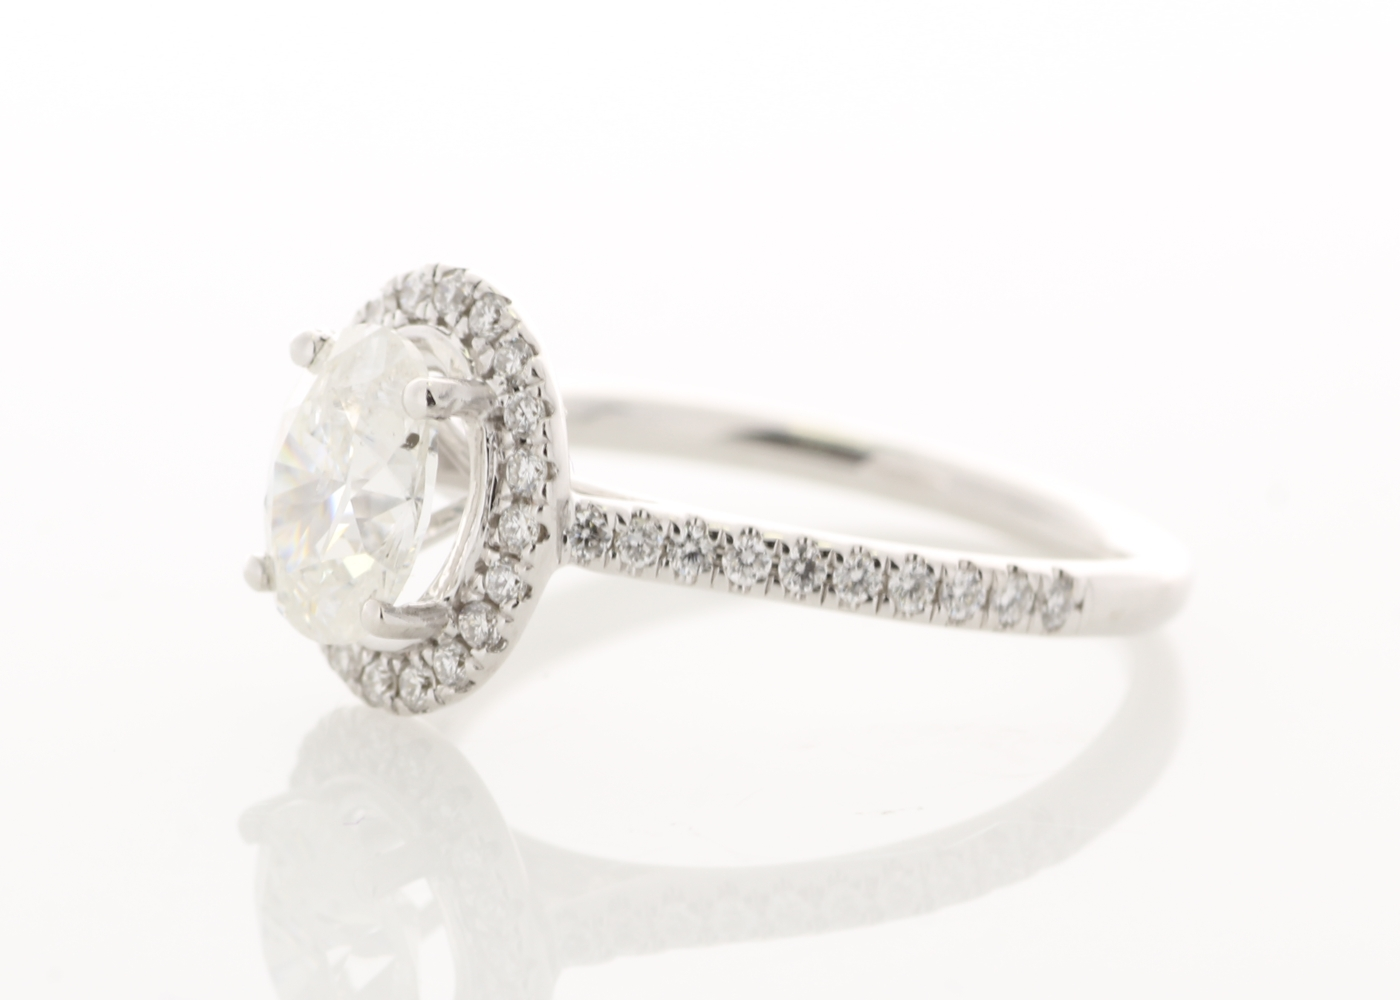 Lot 23 - 18ct White Gold Halo Set Ring 1.28 Carats